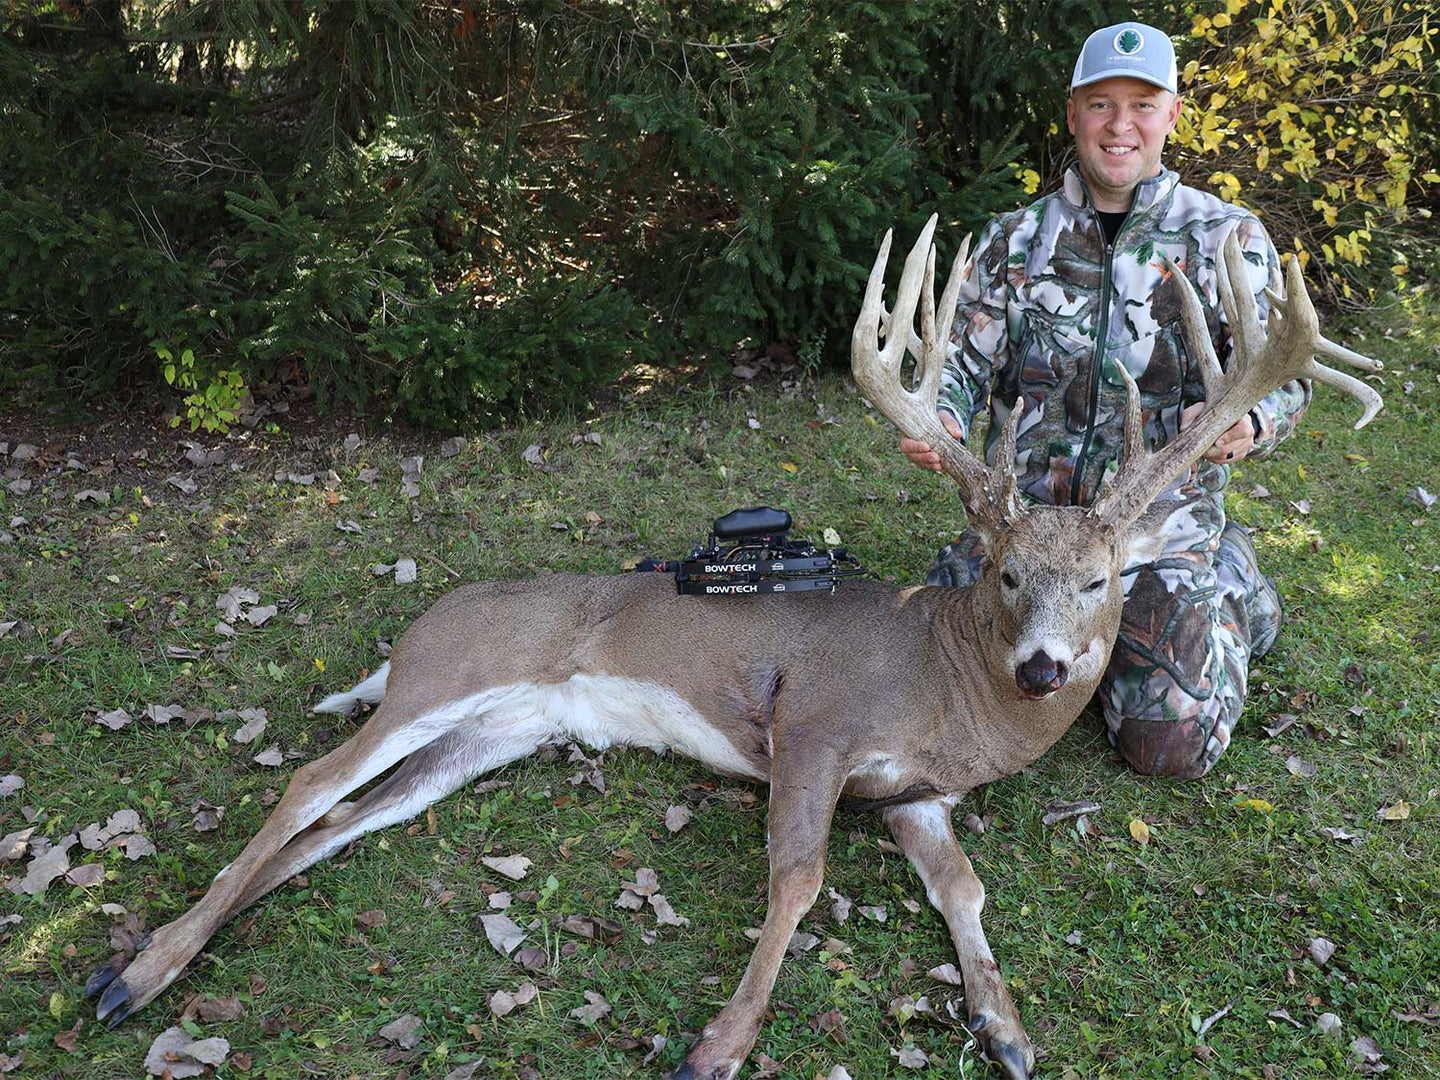 A hunter holds a whitetail deer antler.